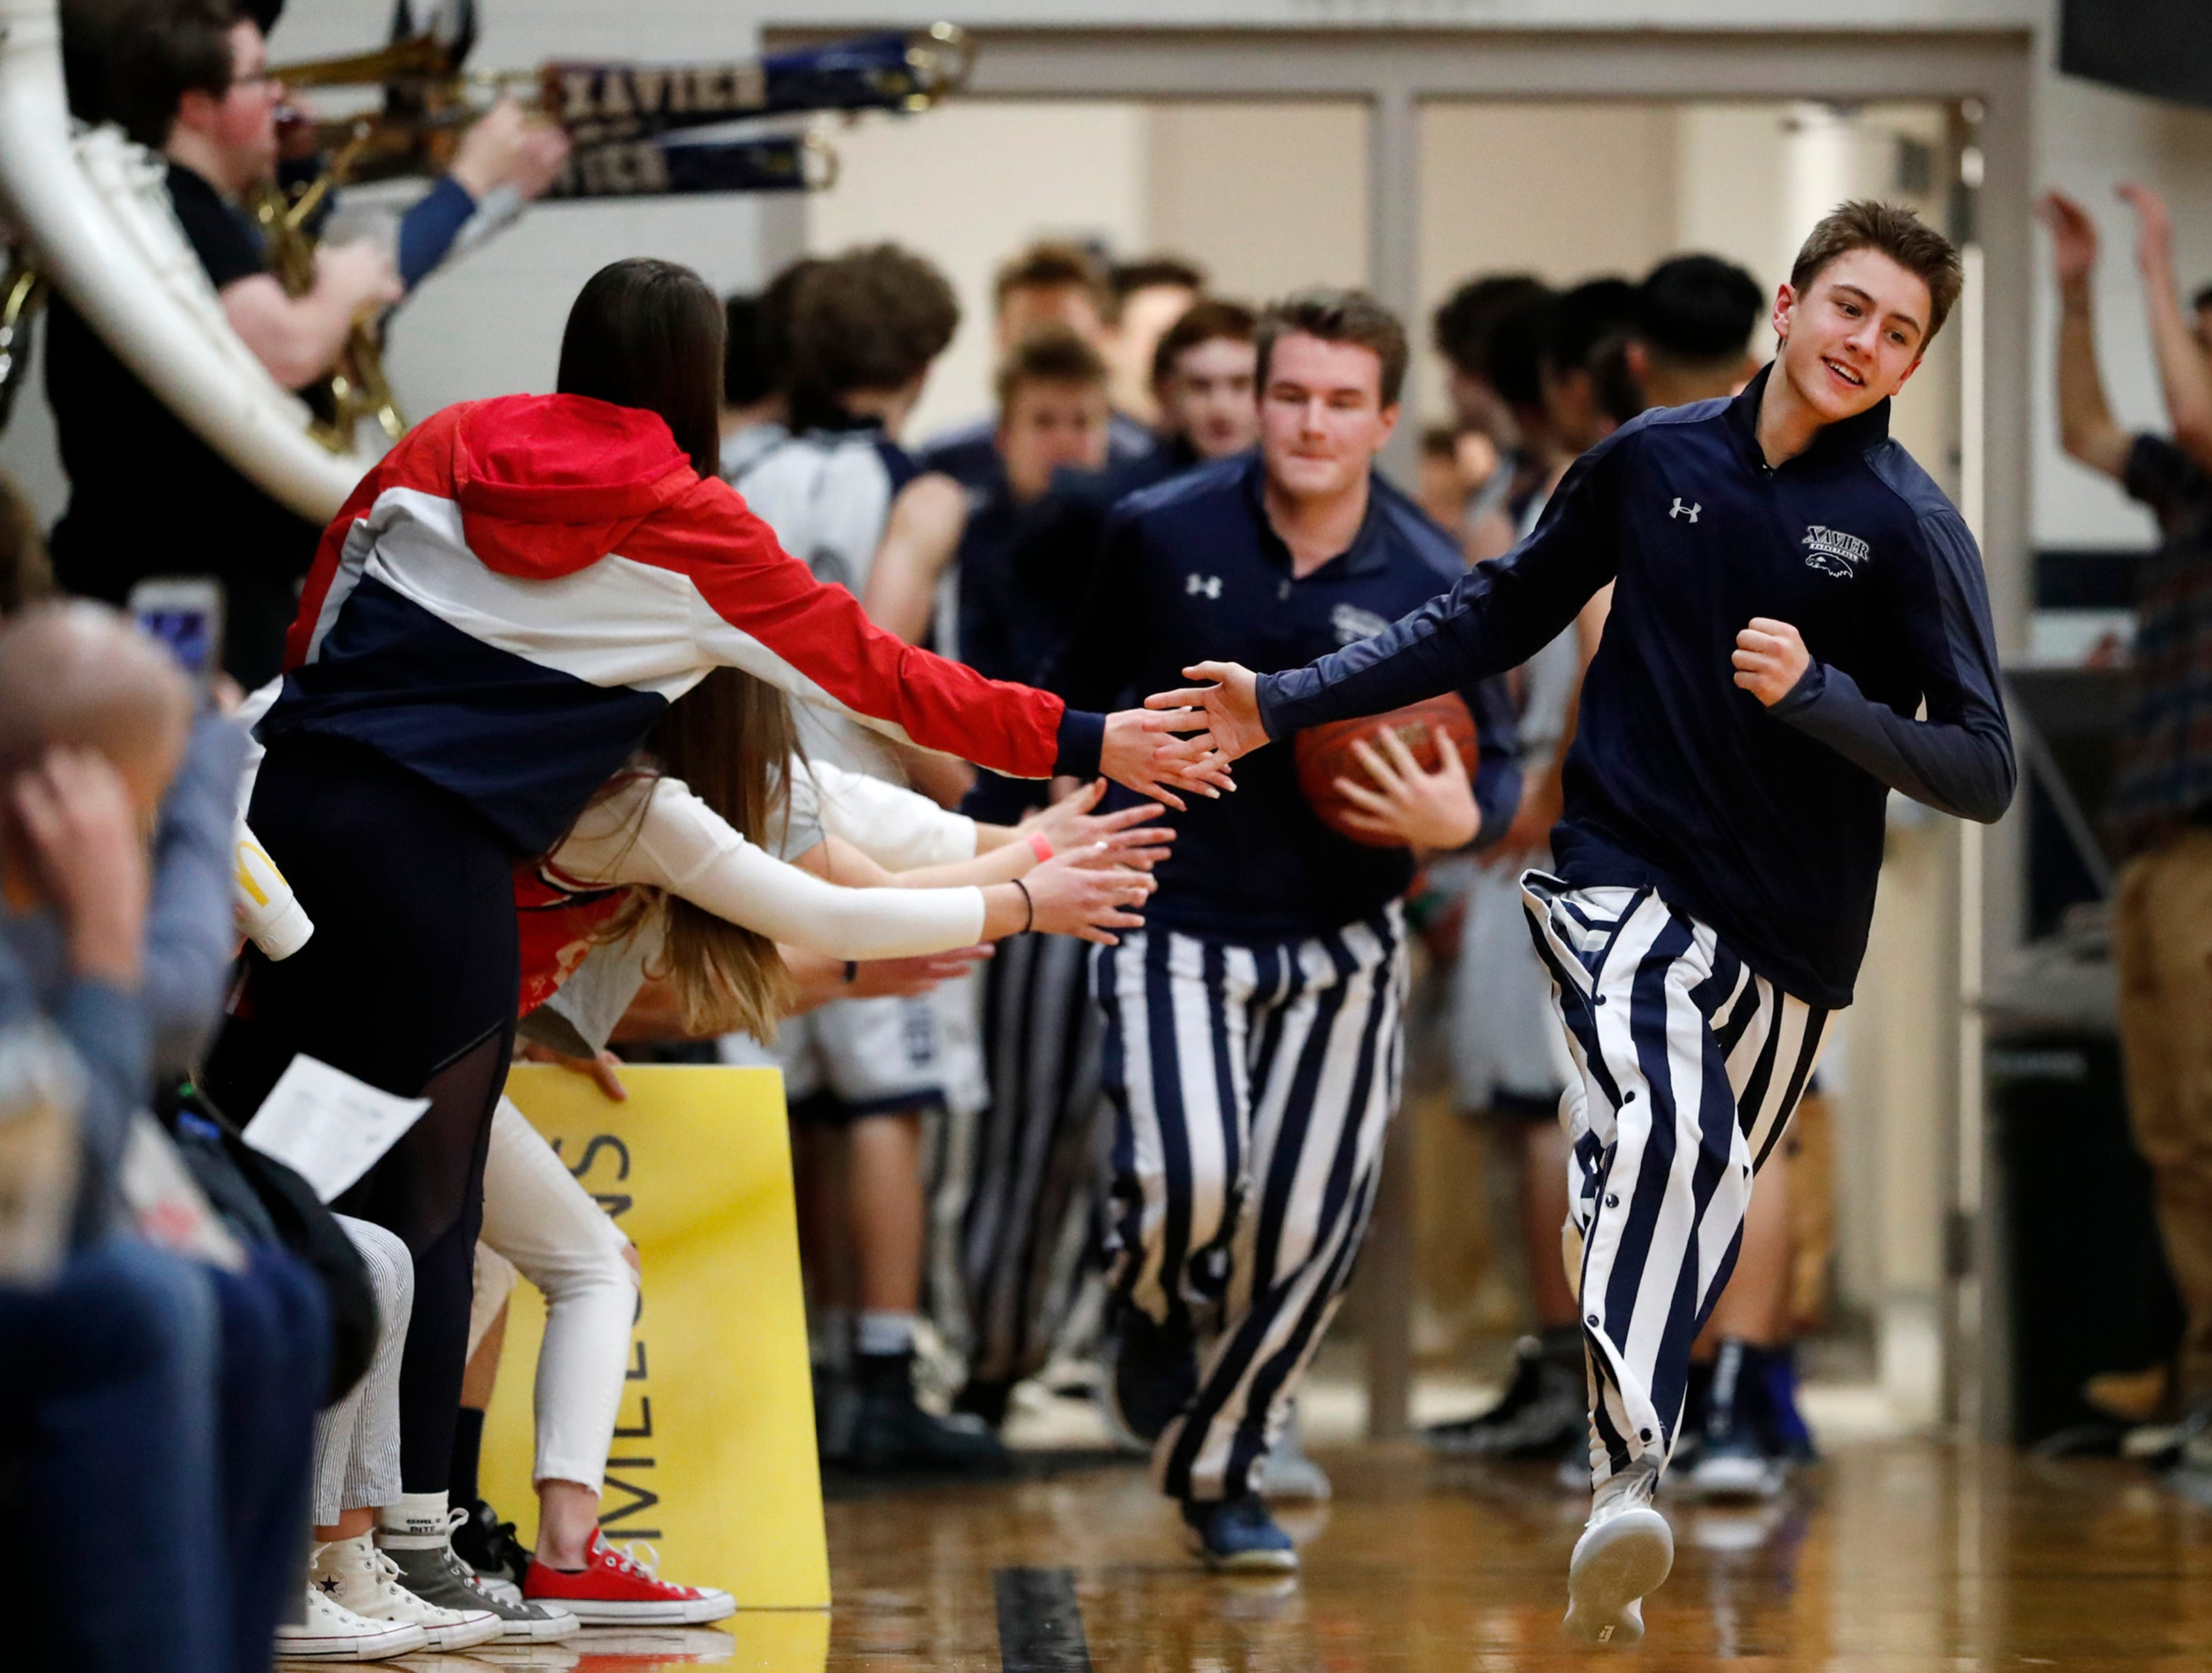 Xavier High School players high five the student section as they take to the court against Seymour High School Friday, Feb. 8, 2019, in Appleton, Wis.Danny Damiani/USA TODAY NETWORK-Wisconsin